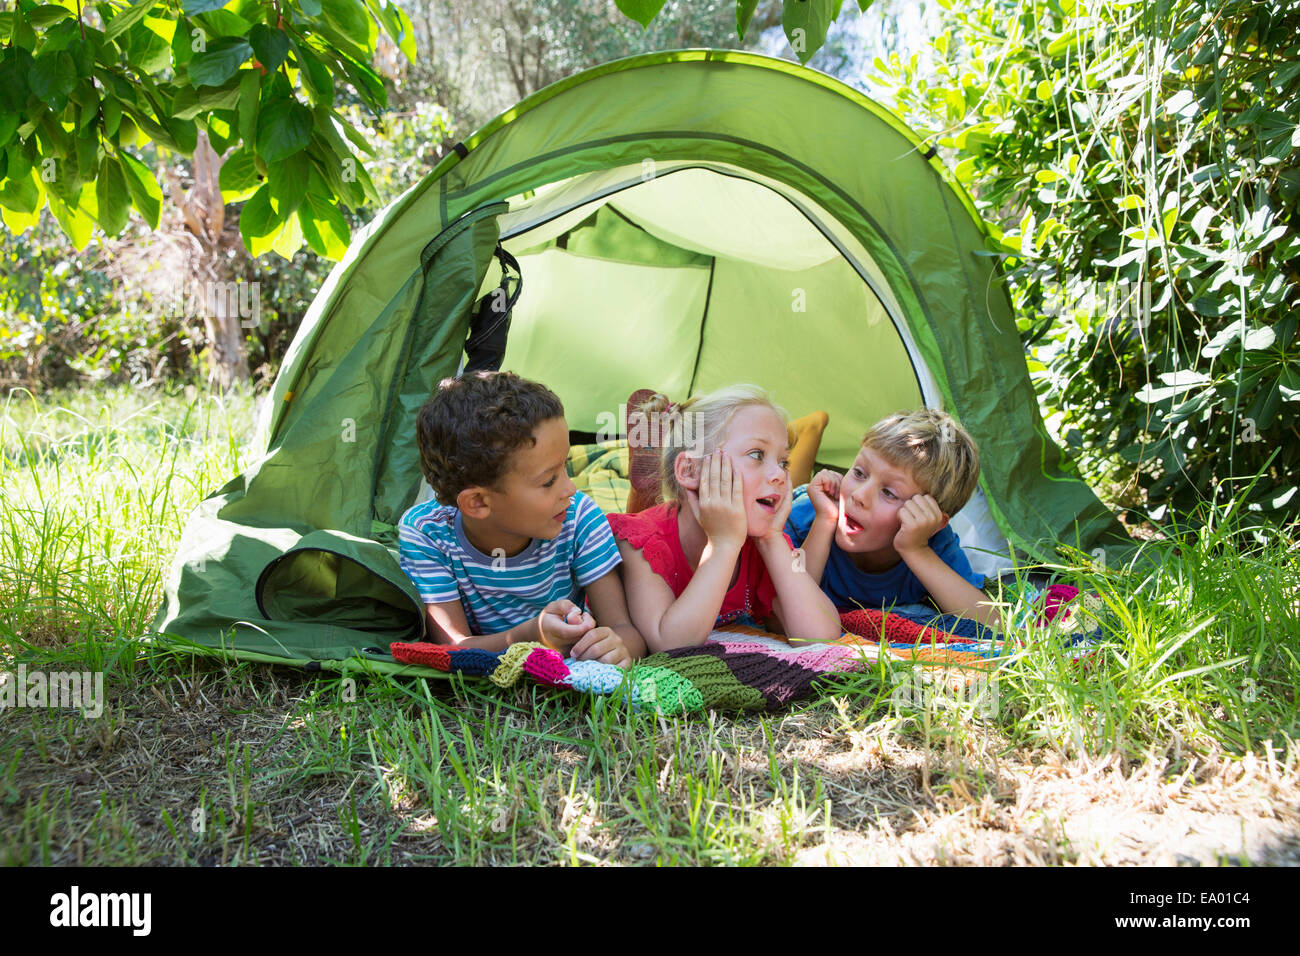 Three children chatting in garden tent - Stock Image